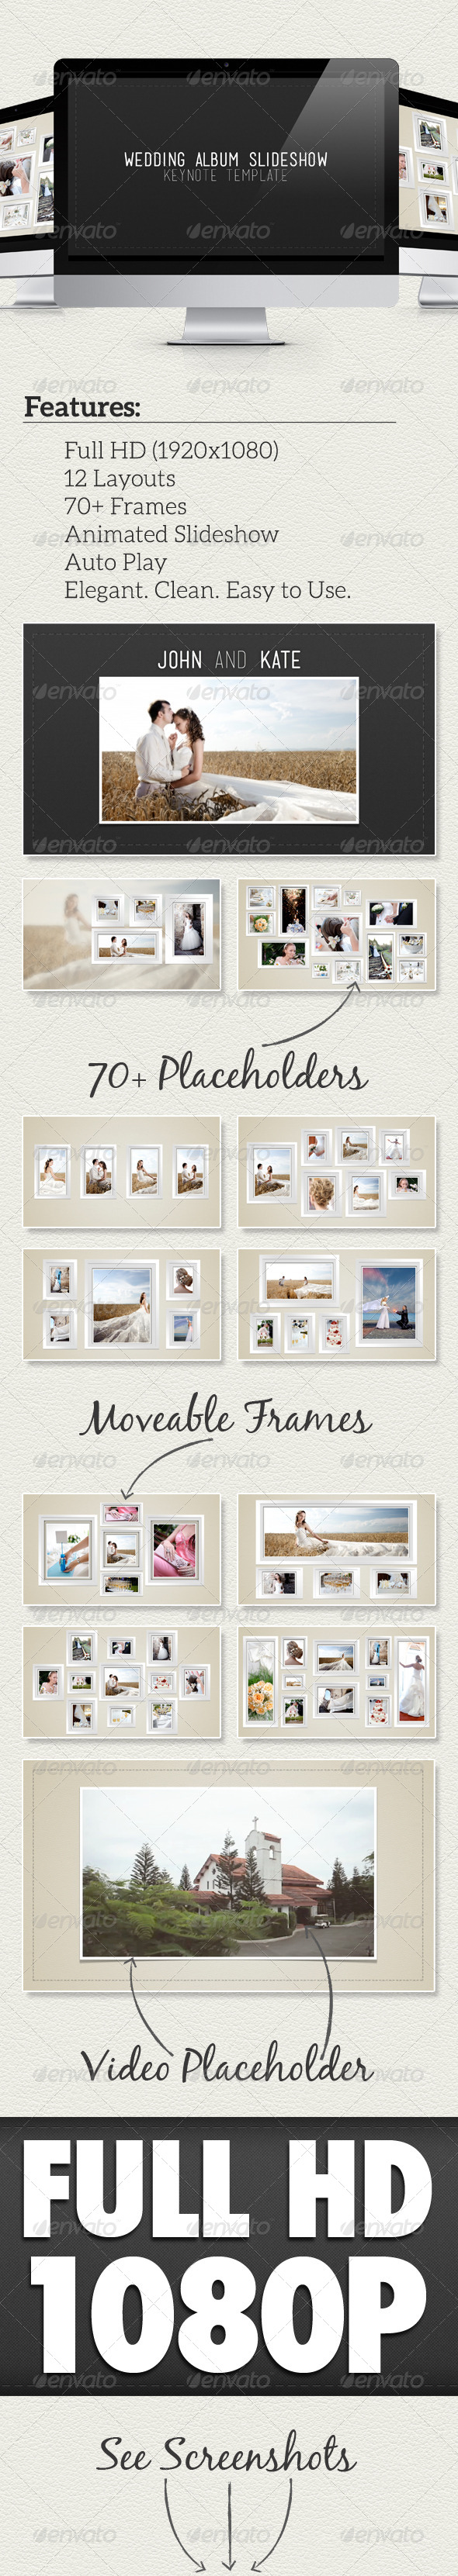 GraphicRiver Wedding Album Slideshow Keynote Template 4919636